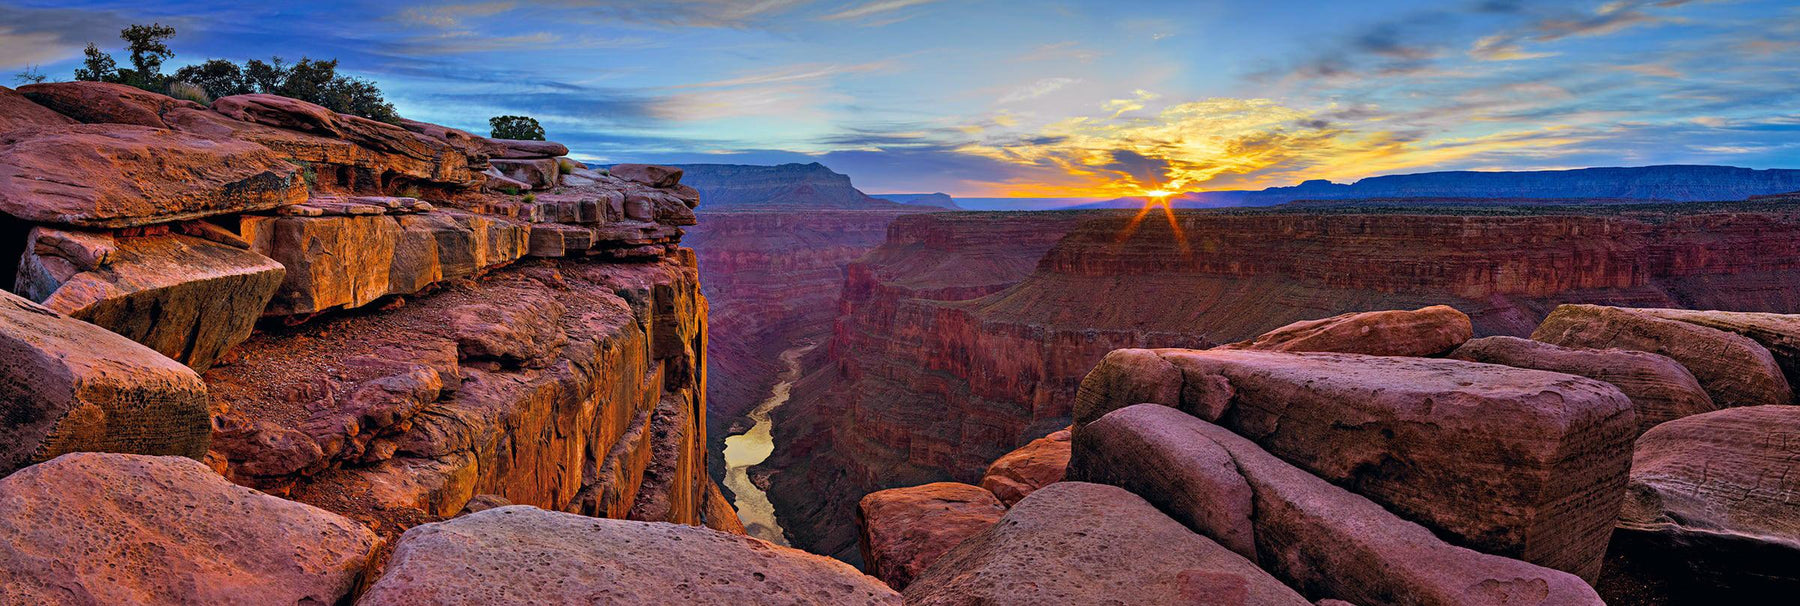 Red rock cliffs overlooking the Colorado River and Grand Canyon National Park Arizona at sunrise